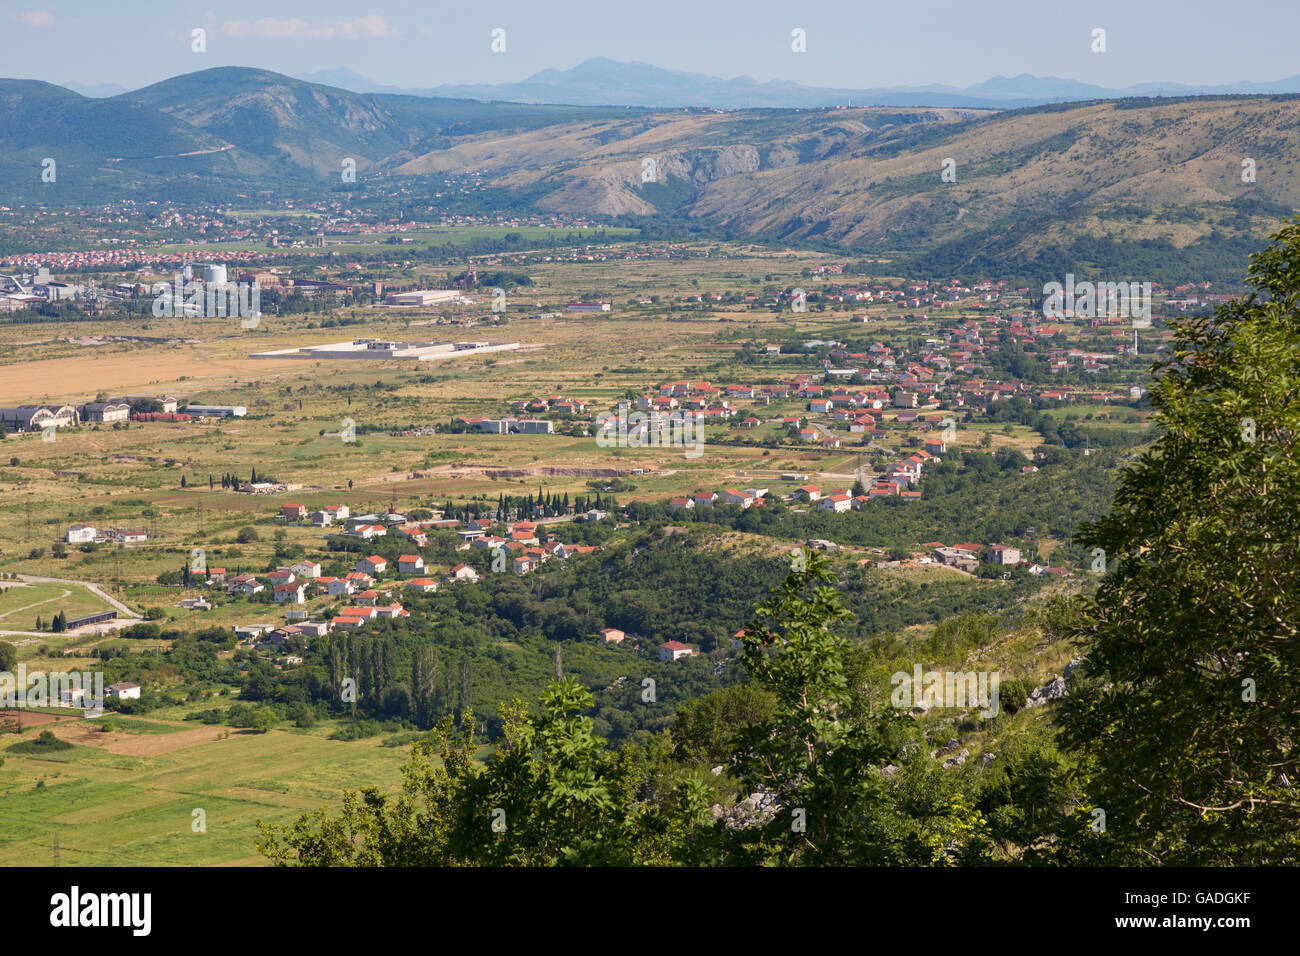 Environs of Mostar, Bosnia-Herzegovina.  Countryside with houses. - Stock Image